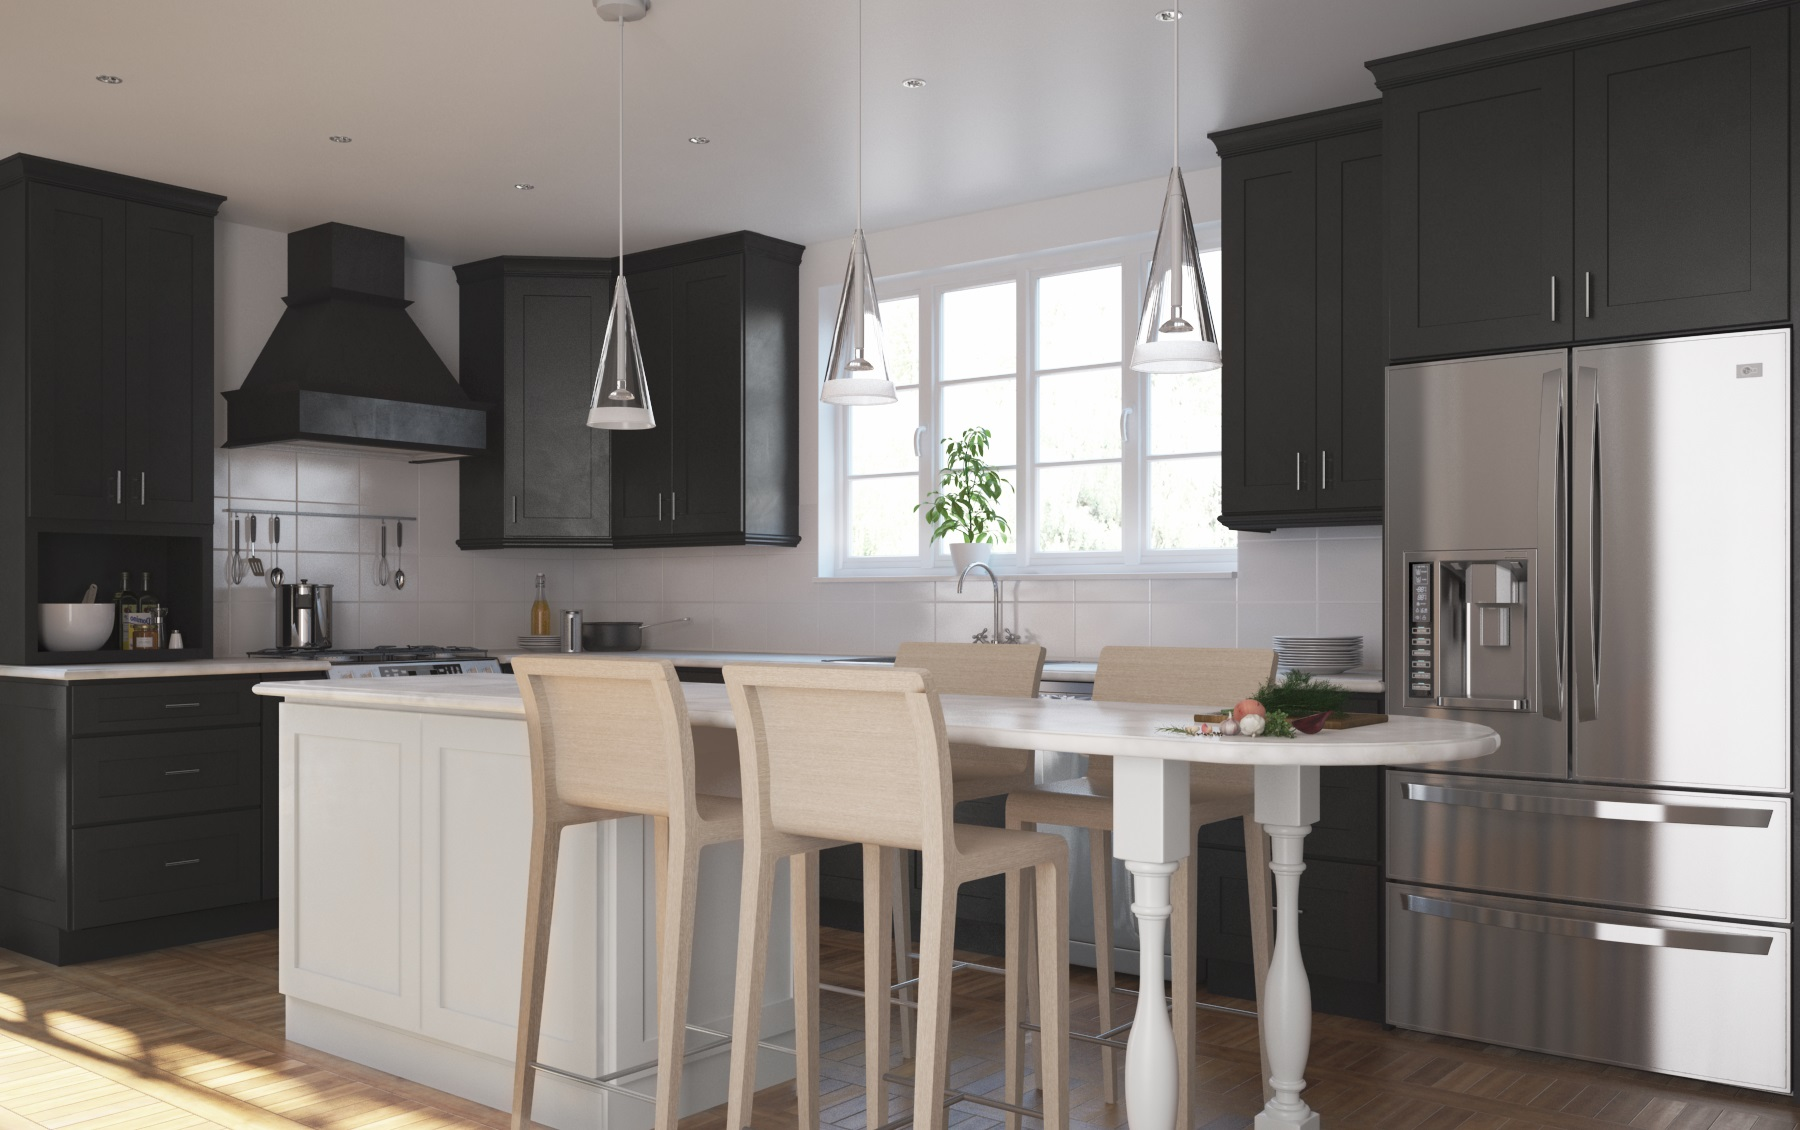 Society shaker black pre assembled kitchen cabinets the for Pre assembled kitchen units